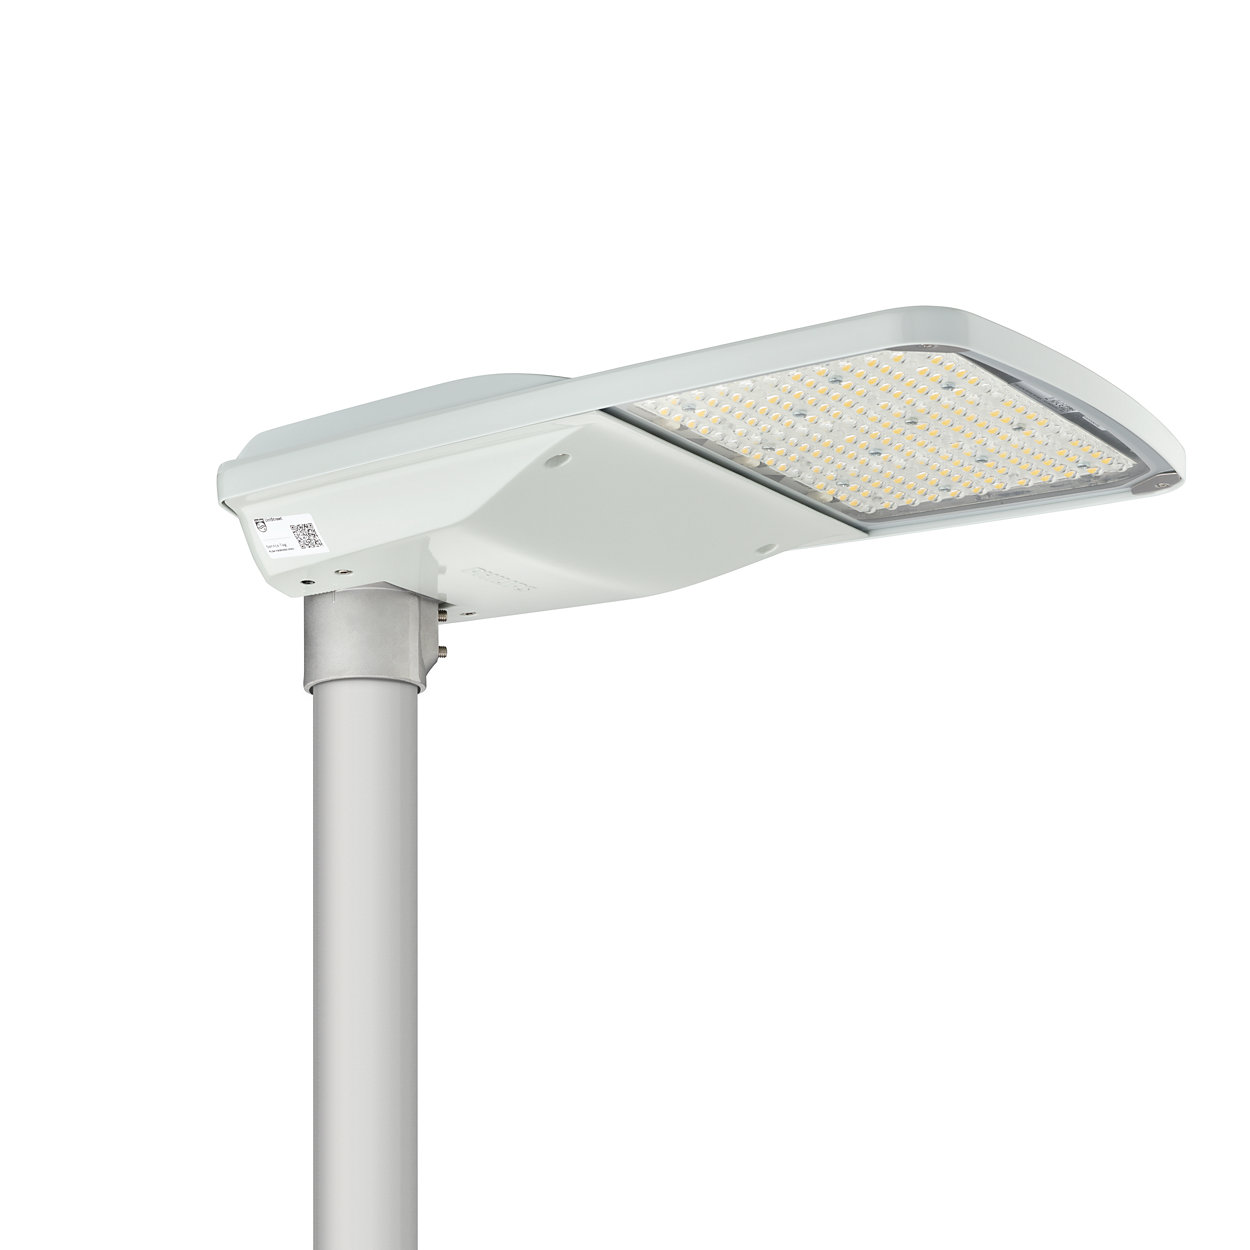 UniStreet – simple, cost-effective road-lighting range